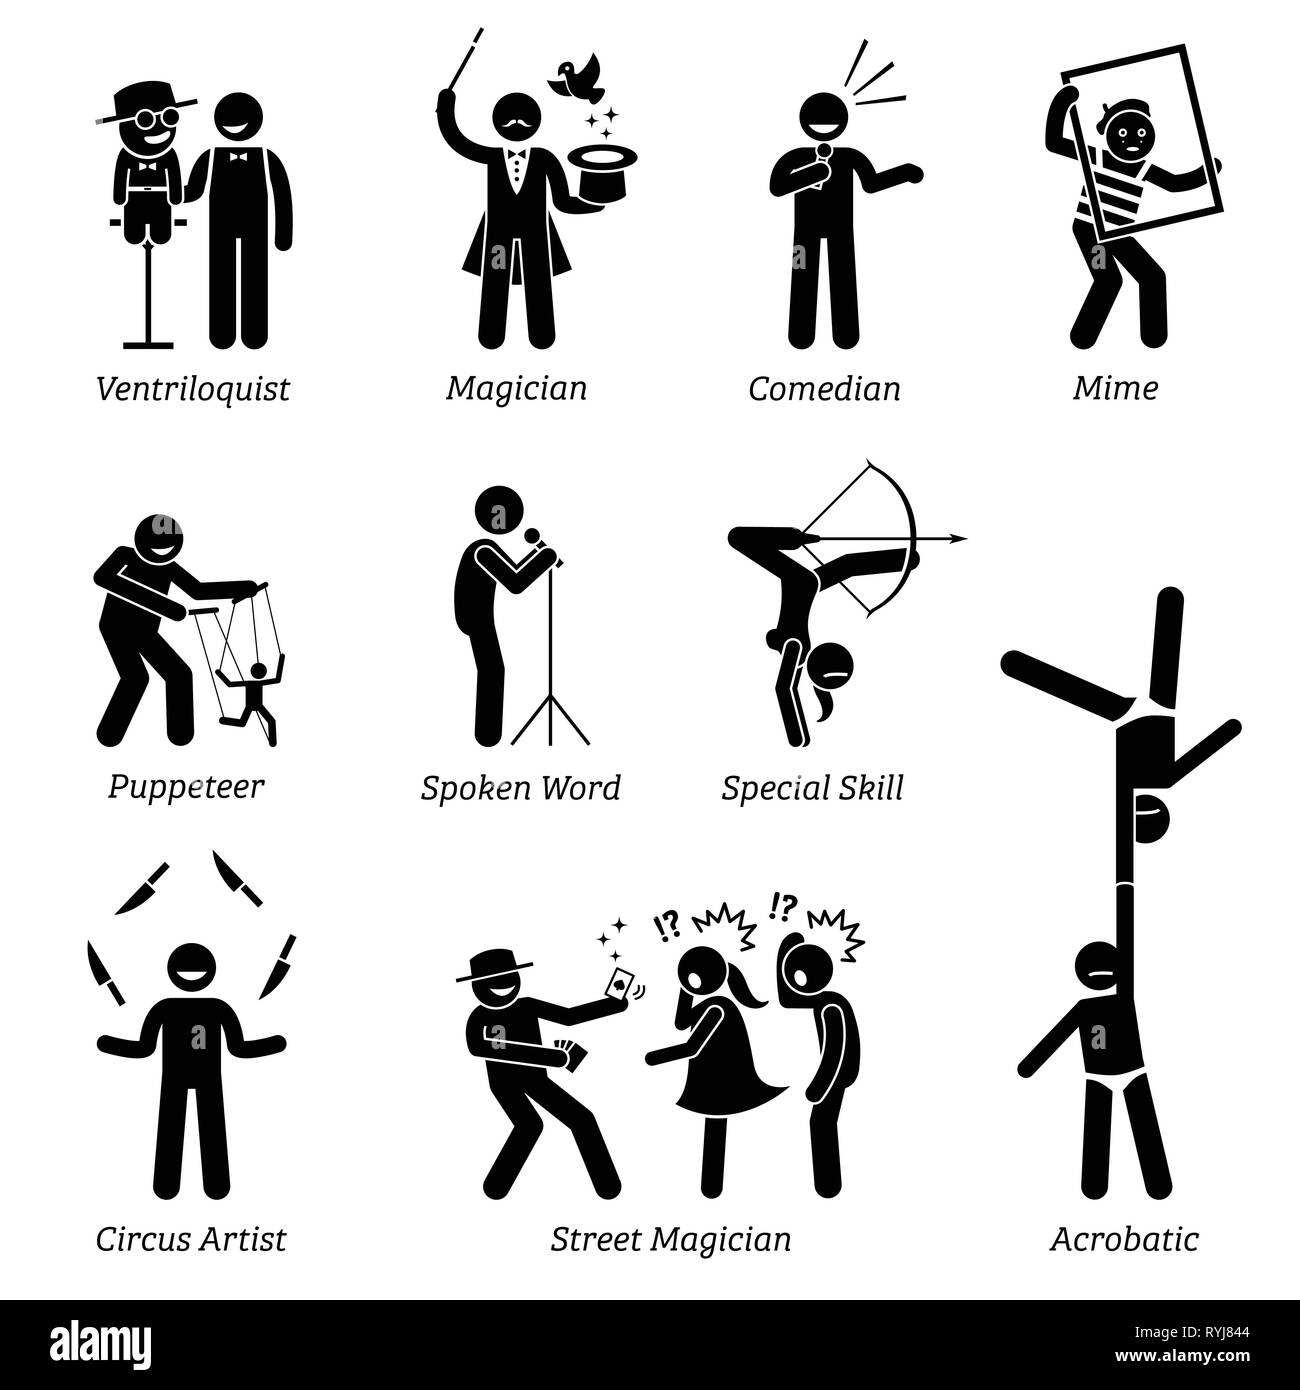 Theater stage performers, entertainers, artists, and live acts. Pictograms depict ventriloquist, magician, comedian, mime, puppeteer, spoken word, cir - Stock Vector